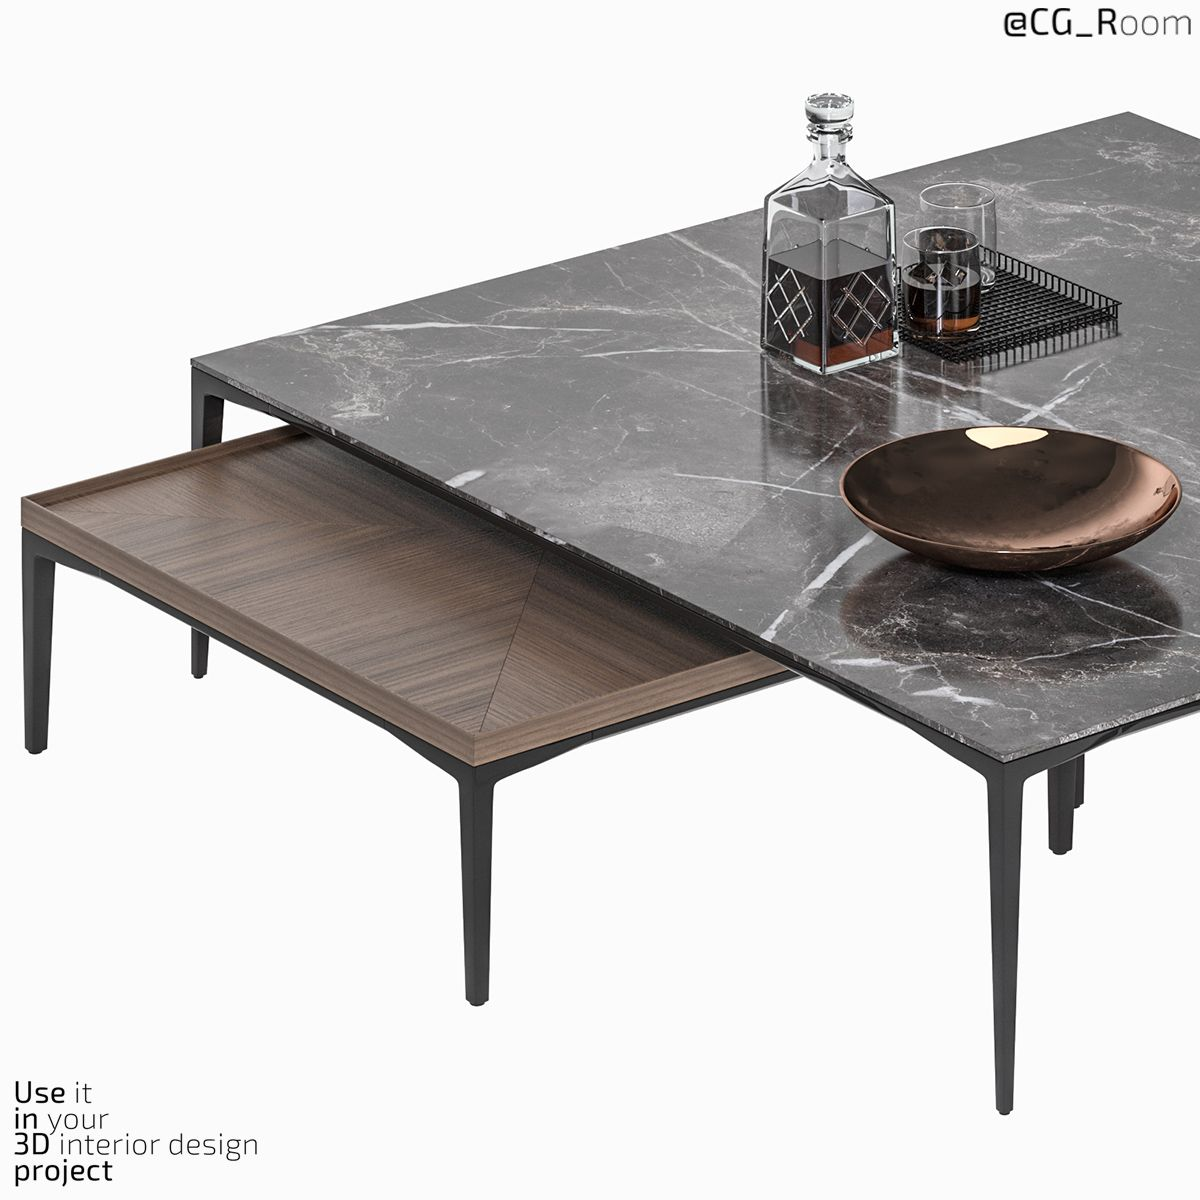 Coffee Table Tray Rimadesio Coffee Table Table Decor Living Room Decorating Coffee Tables [ 1200 x 1200 Pixel ]